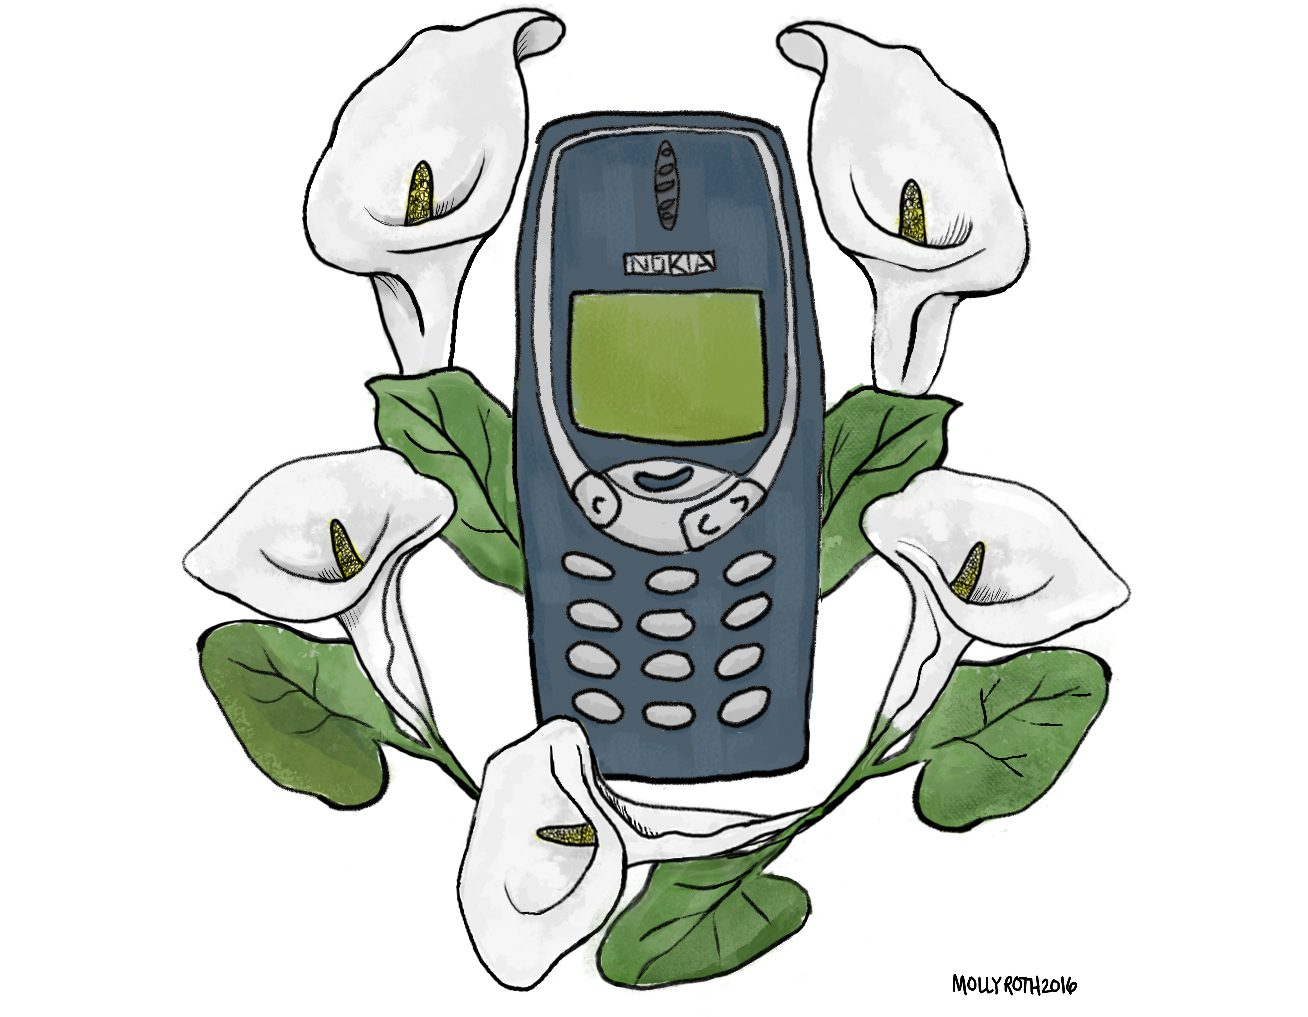 Victoria's Nokia 3310,  Cell Phone Obituaries  for the New Yorker Daily Shouts, 2016